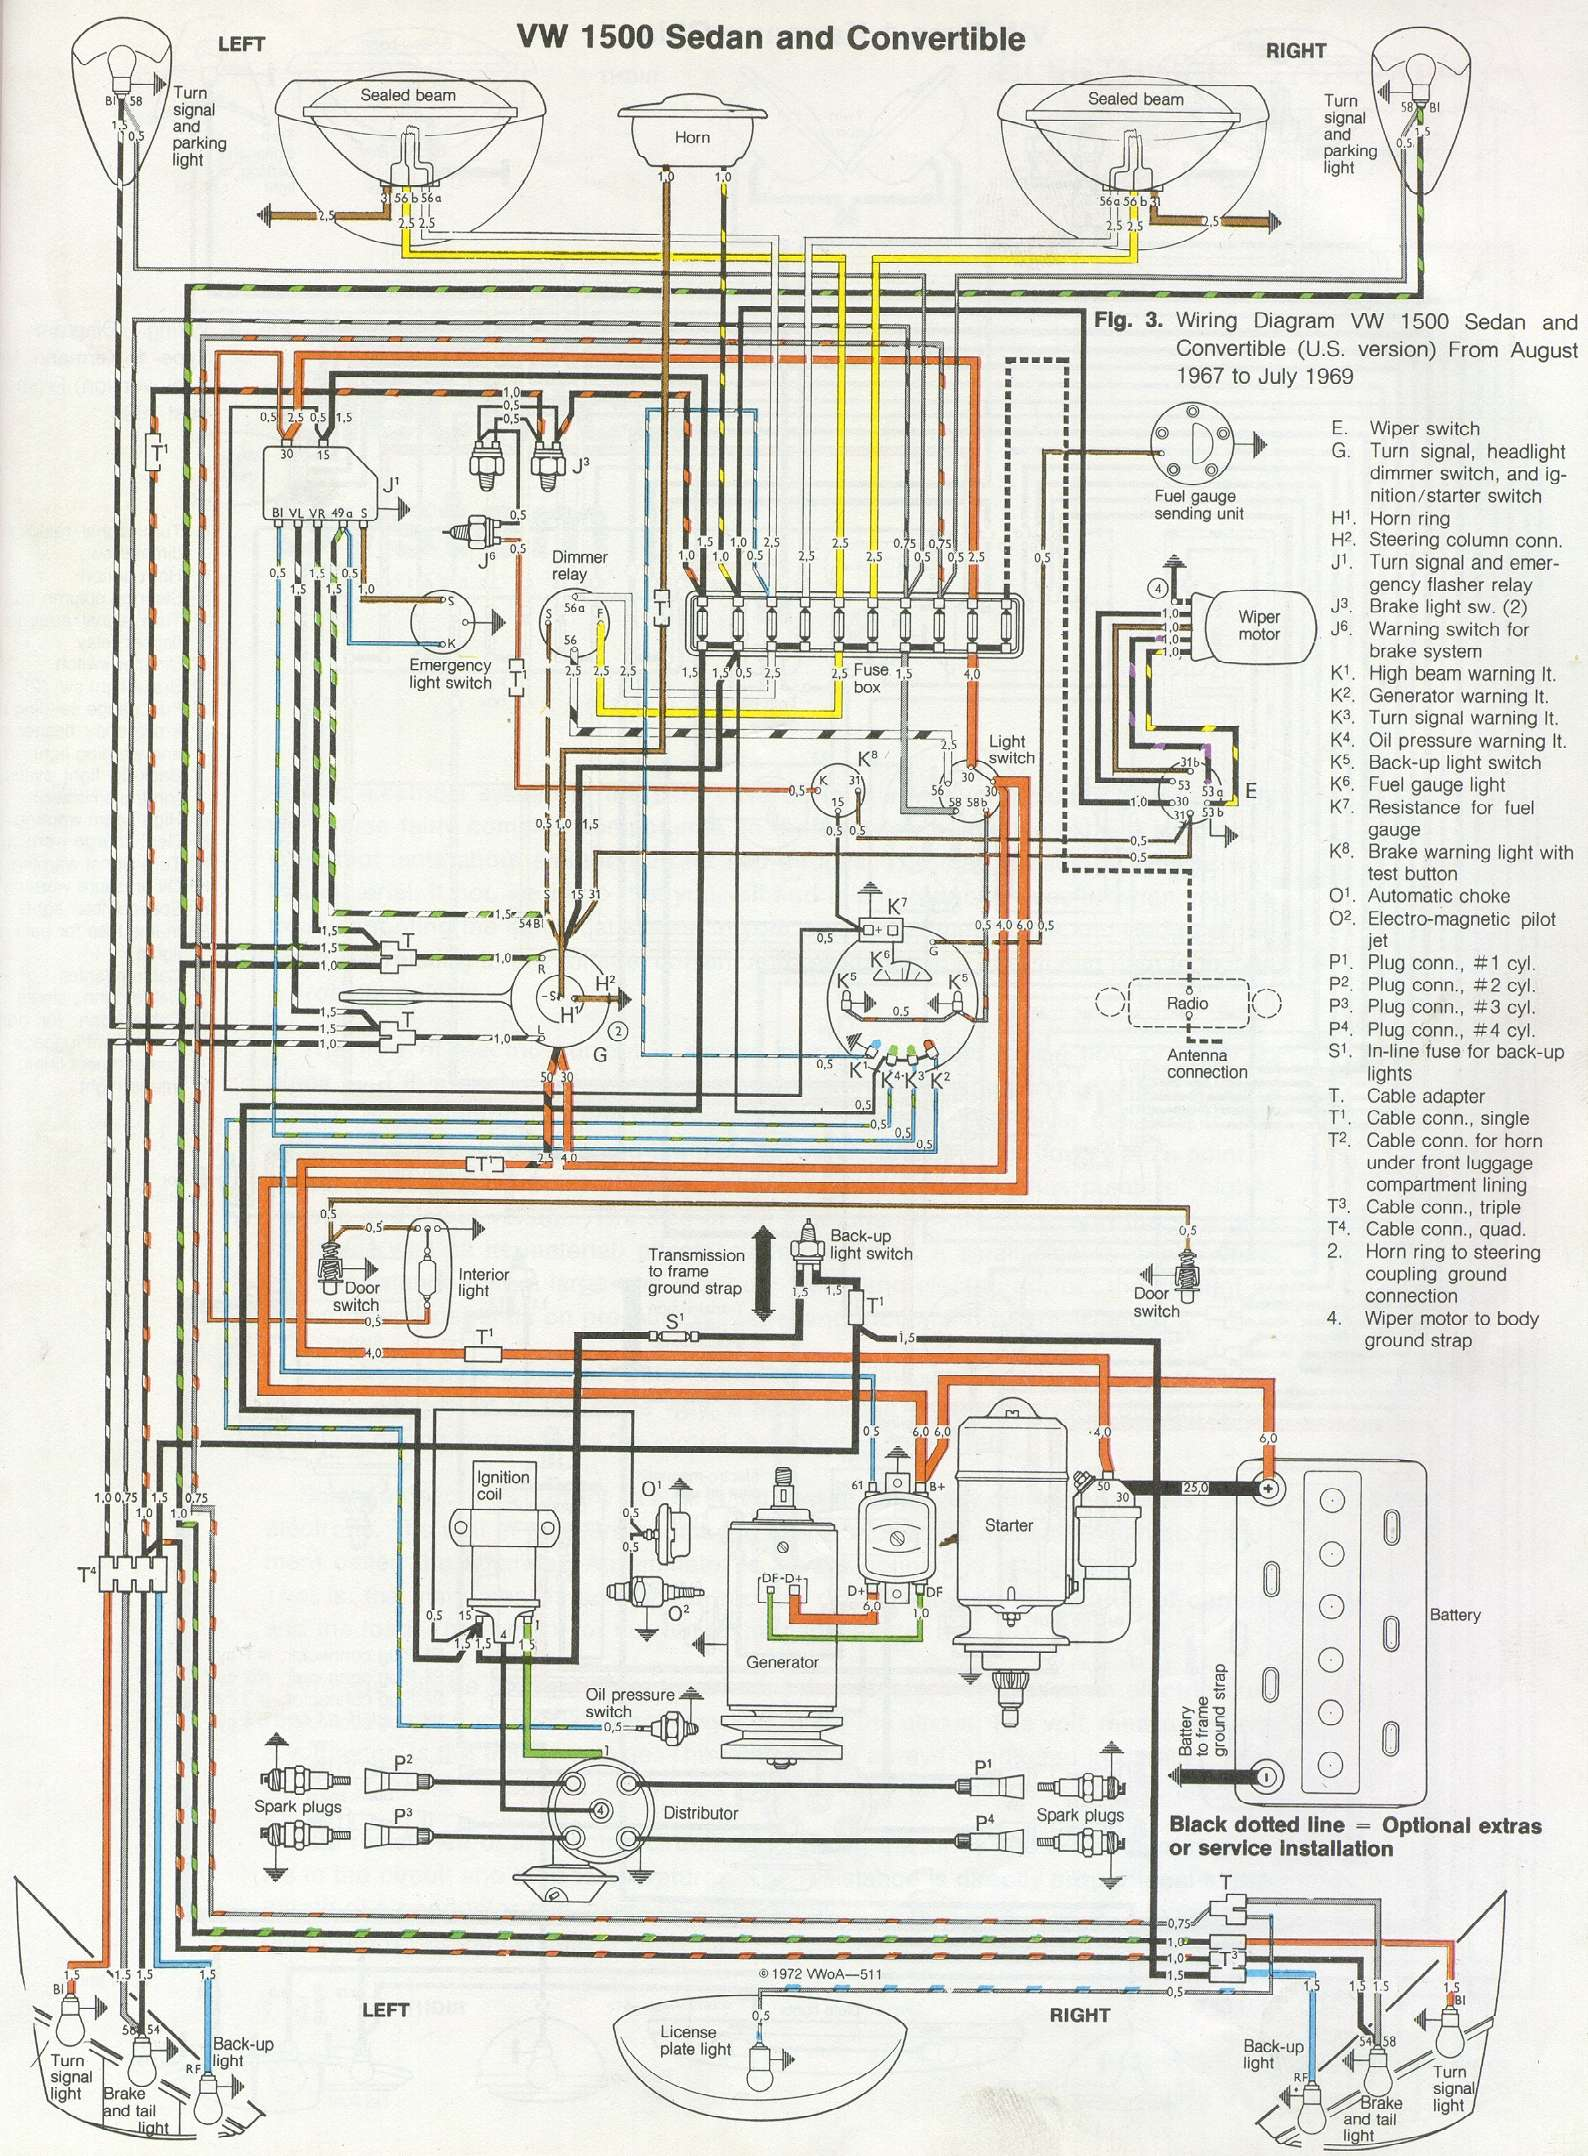 2001 Pontiac 2 4 Engine Diagrams Free Wiring Diagram For You Ford Alternator On 1977 Chevy Truck Fusca Mania Clube Ce Esquema El U00e9trico Do Atualizado 2004 Grand Prix 24